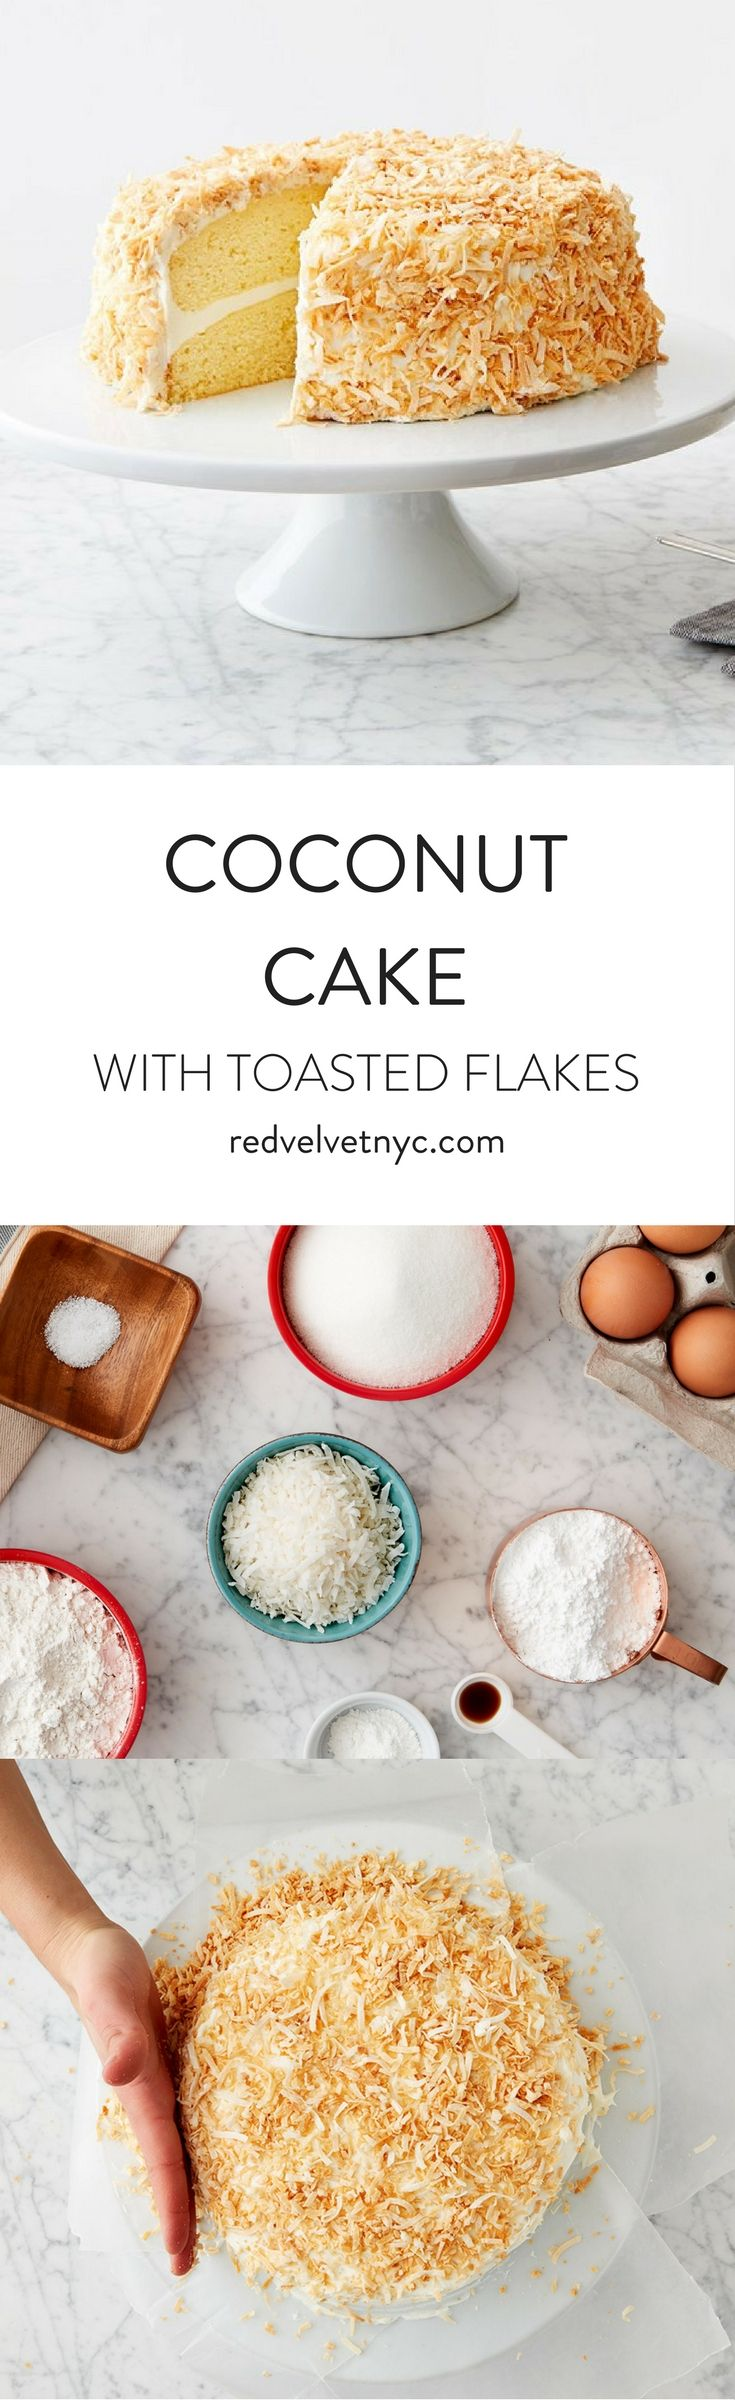 Made from scratch, this moist cake with coconut cream frosting and toasted flakes is a stunning take on the classic cake. Perfect for spring parties and Easter celebrations!